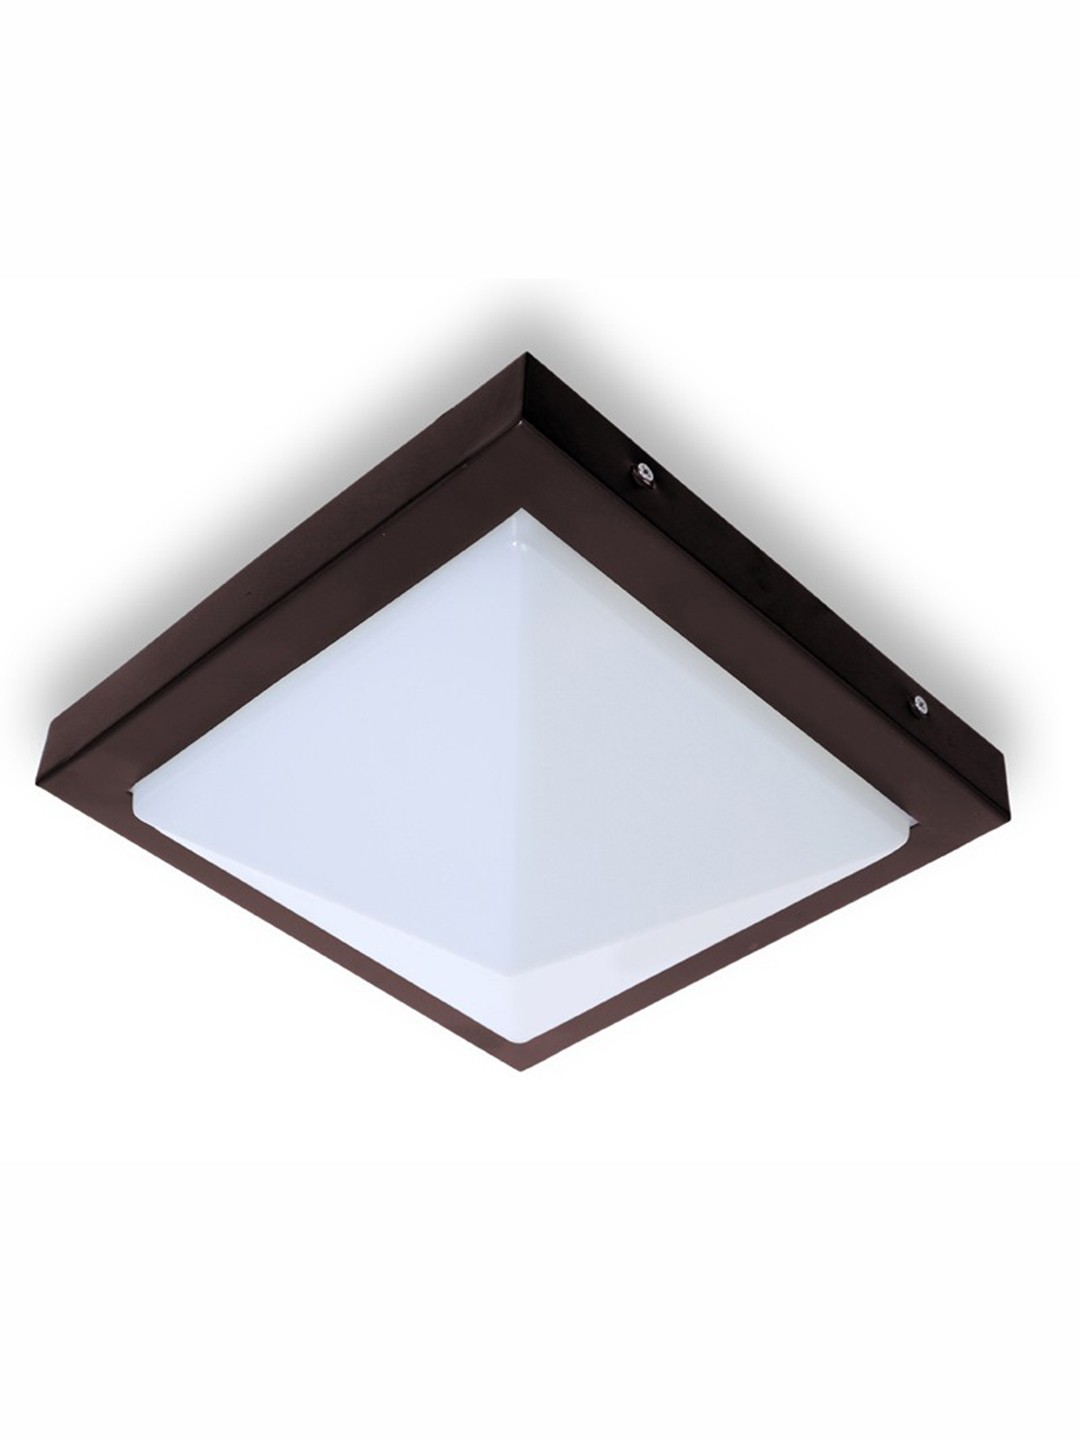 Contemporary Energy Saver Pyramid Ceiling Light